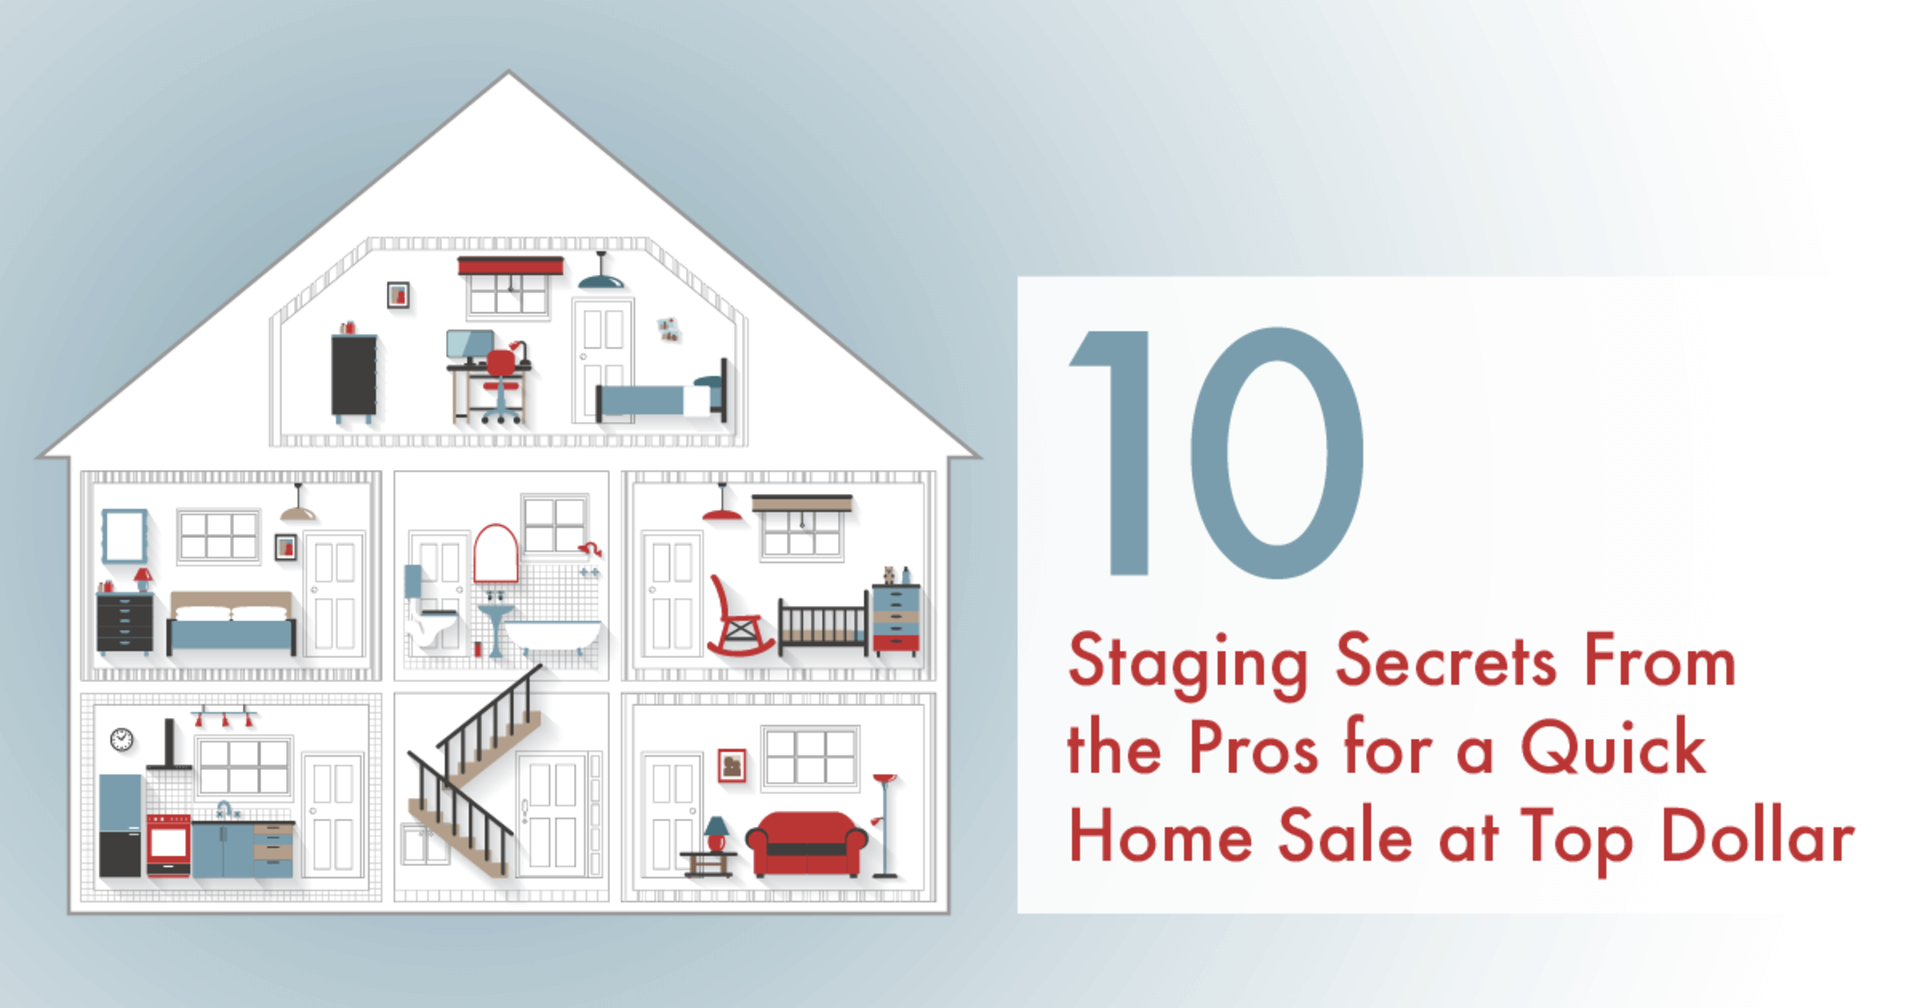 10 Staging Secrets From the Pros for a Quick Home Sale at Top Dollar